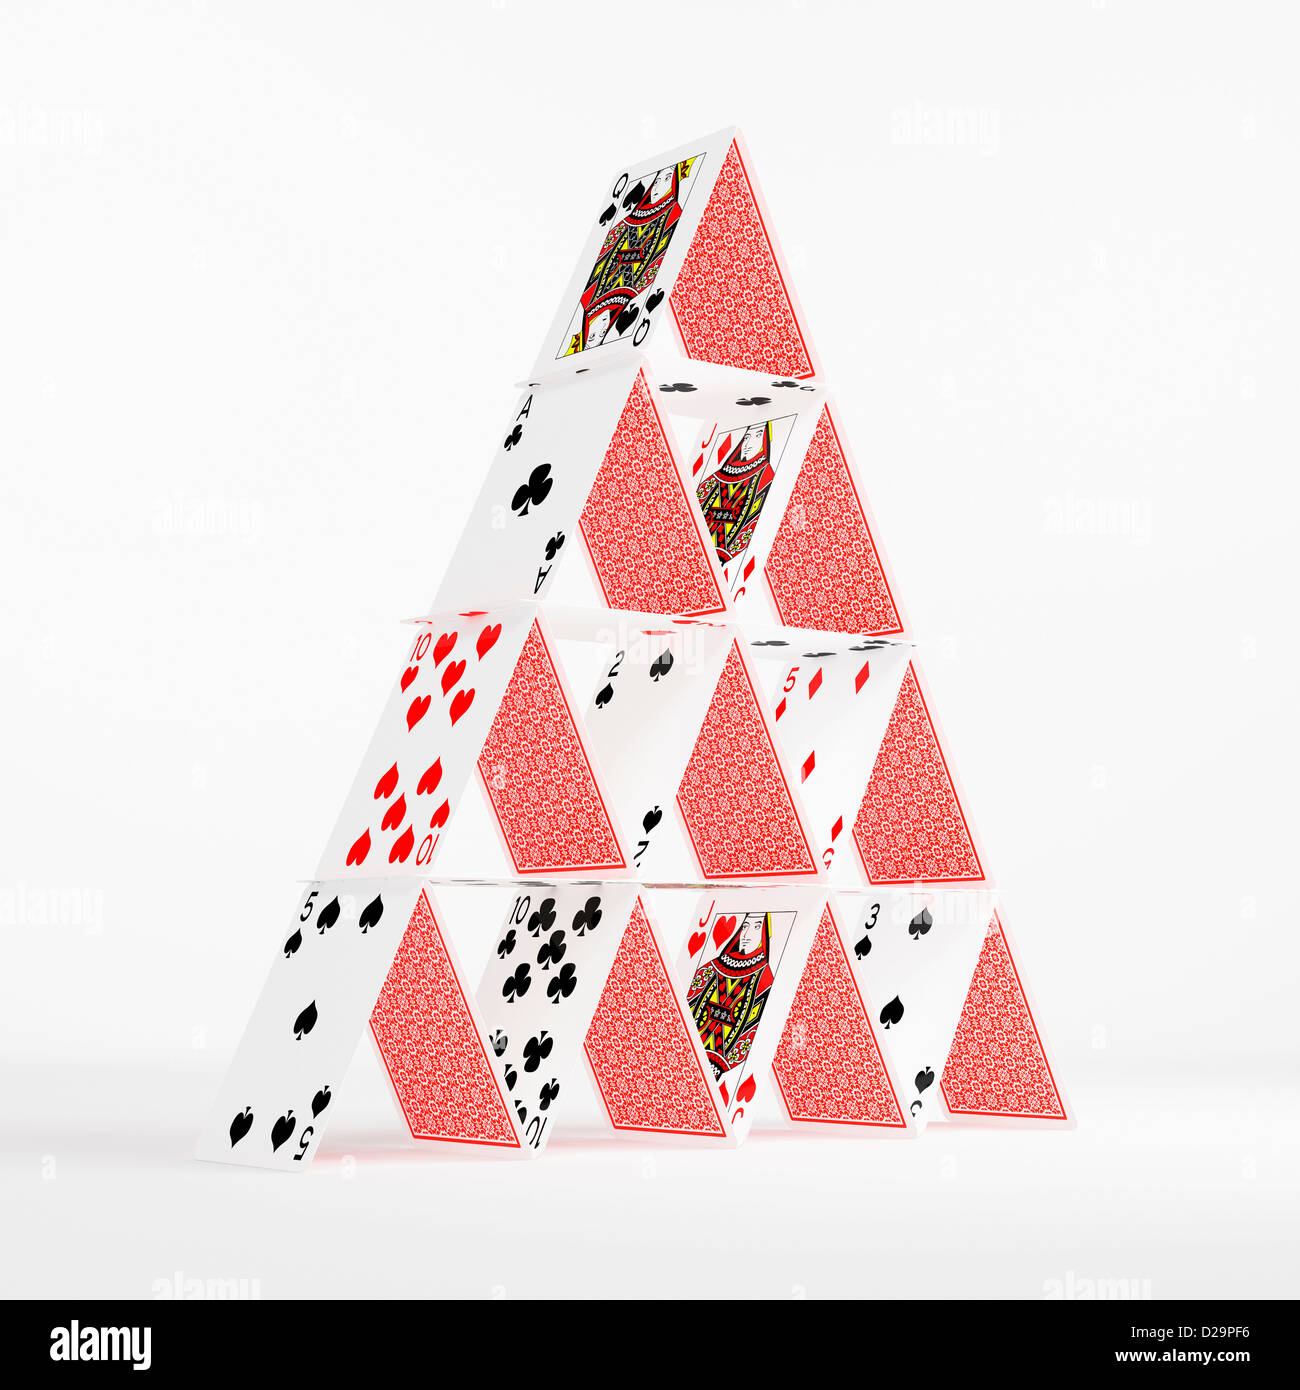 House of cards pyramid - Stock Image